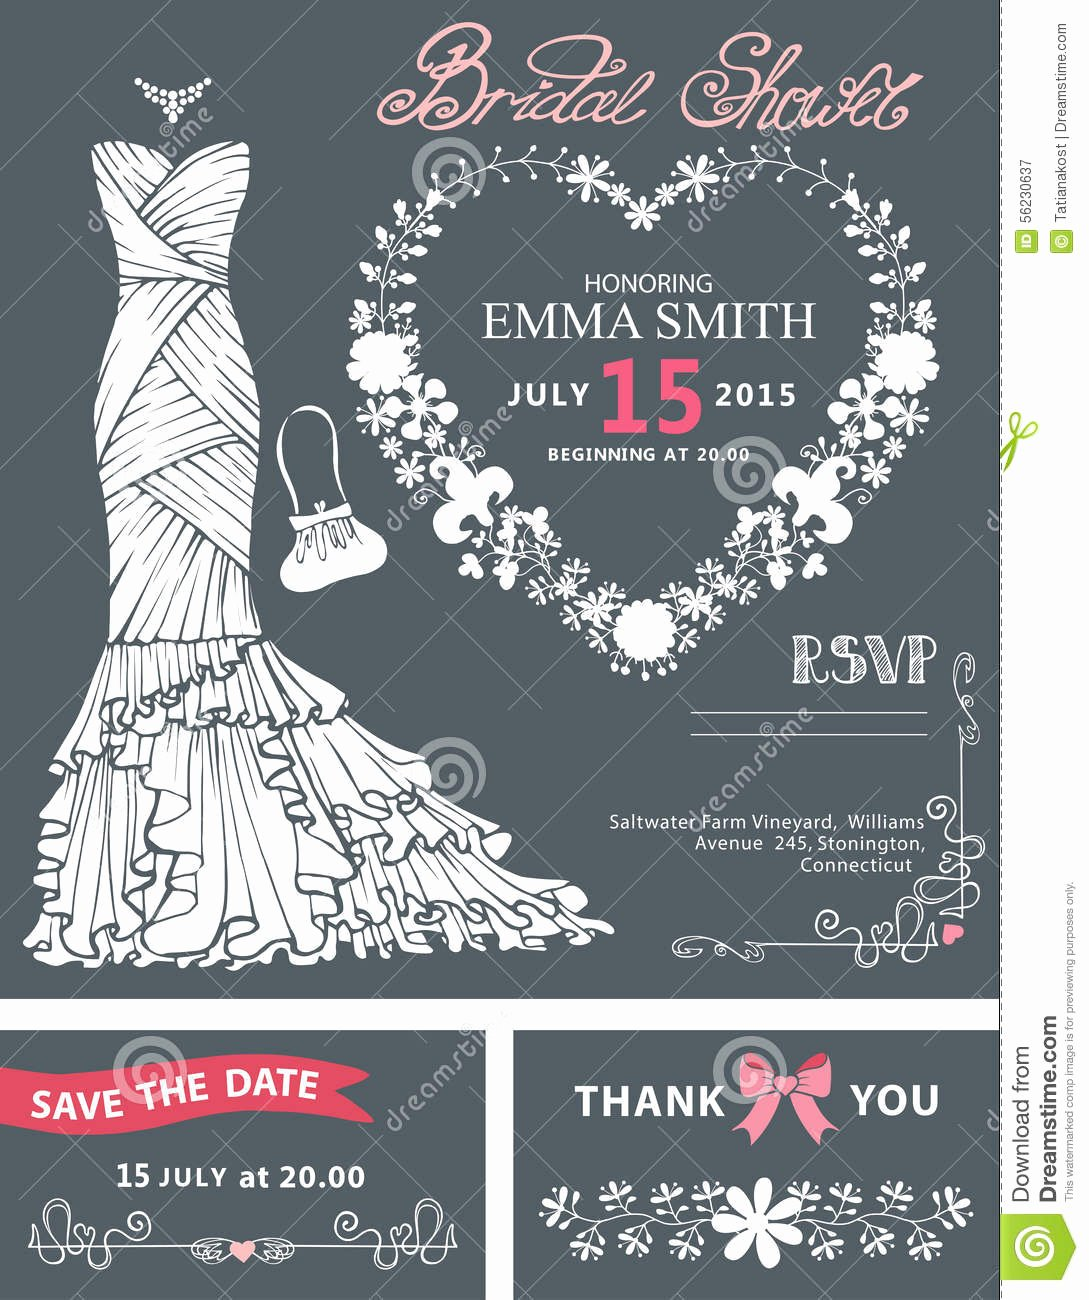 Wedding Dress Invitation Template Awesome Bridal Shower Invitation Template Bridal Dress Stock